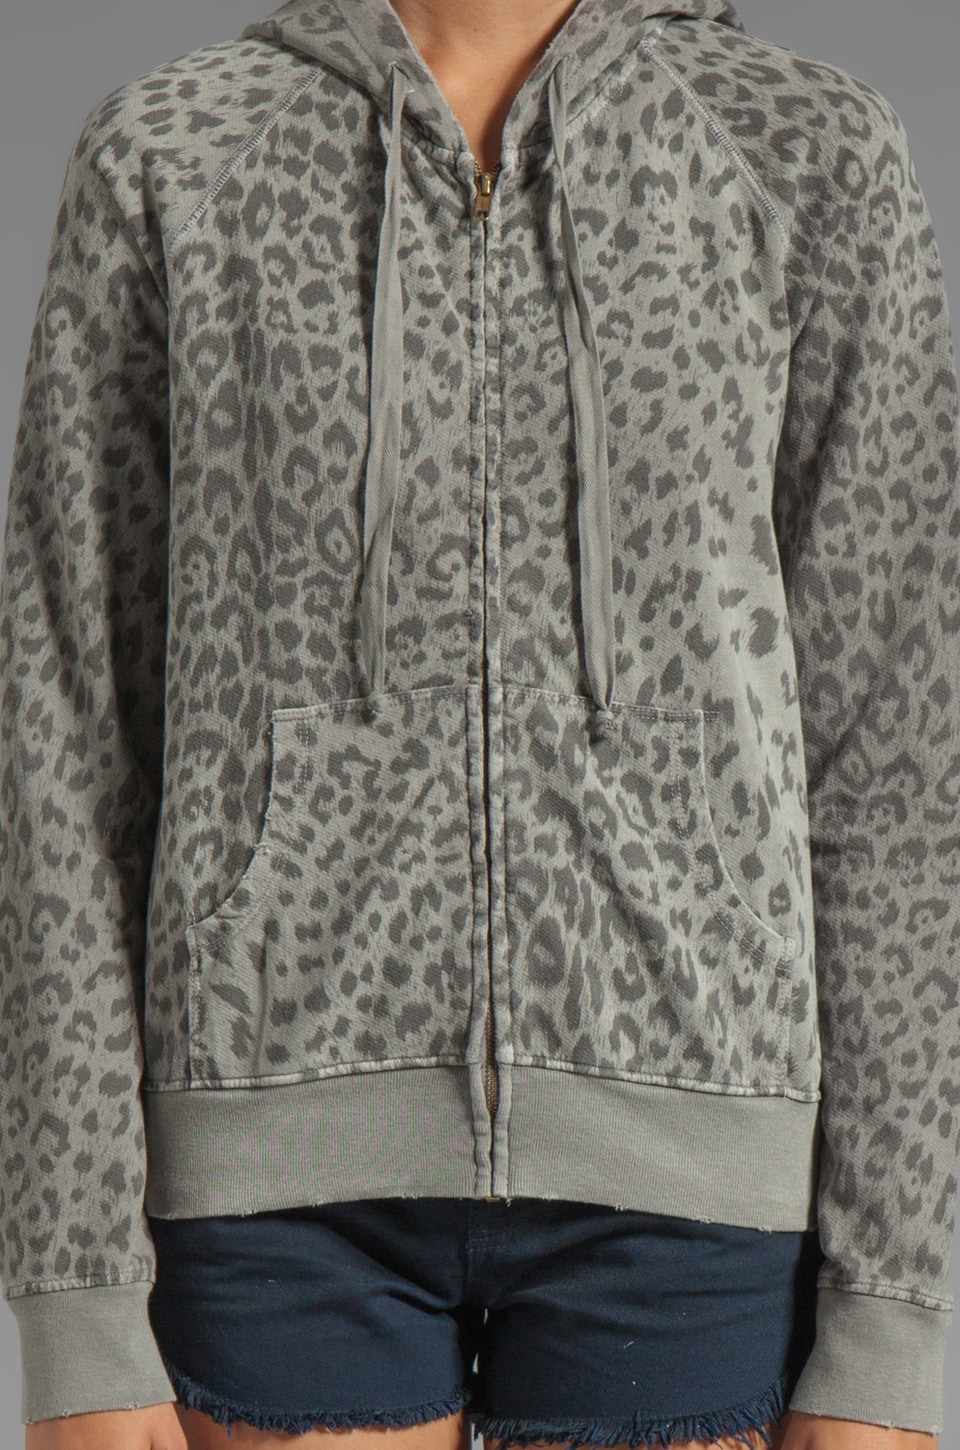 Current/Elliott Hoodie in Grey Leopard